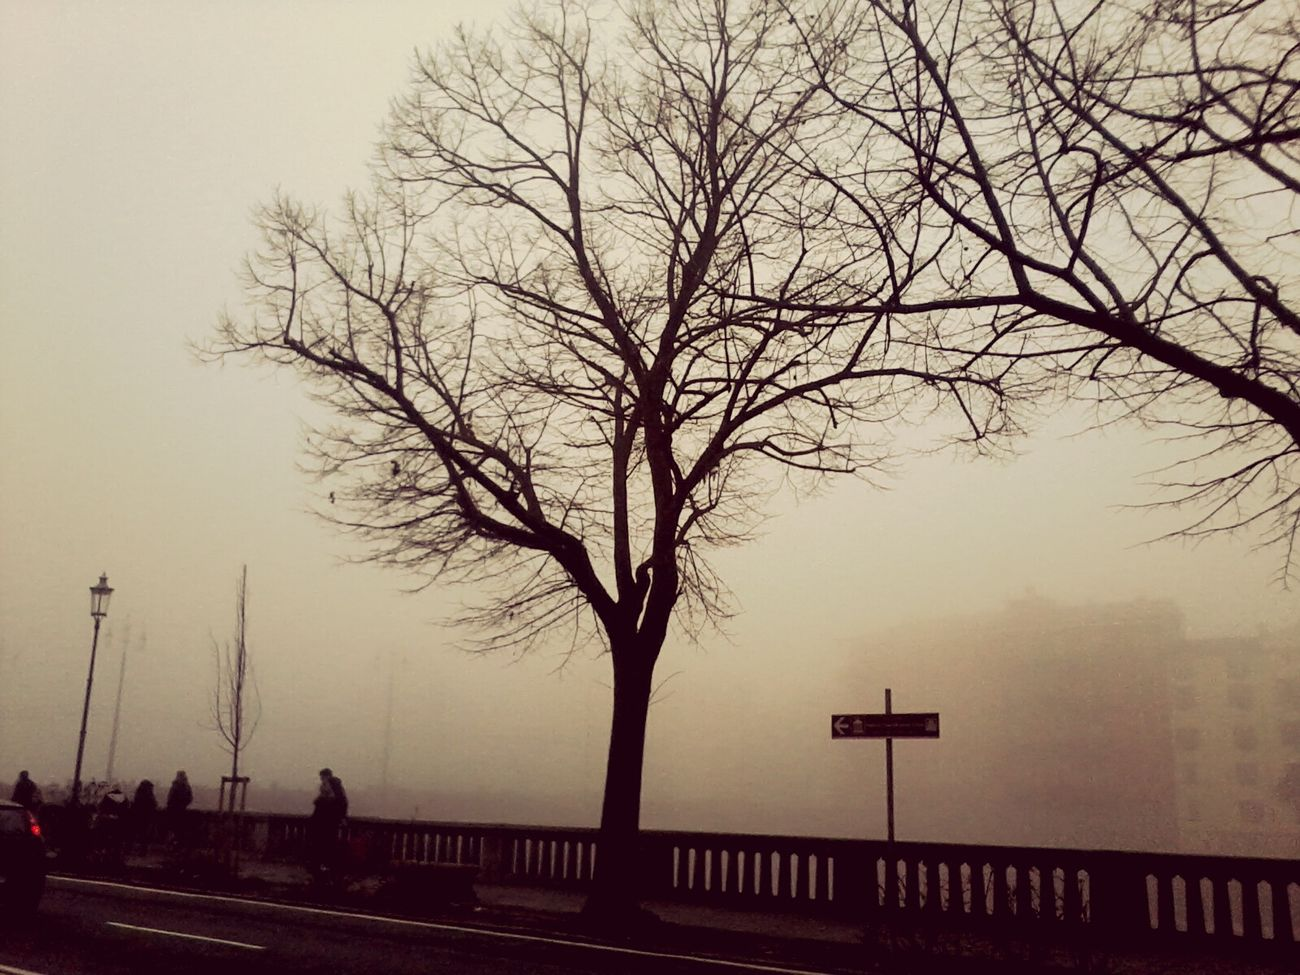 Parma Taking Photos Troppa Nebbia Albero Solitudine